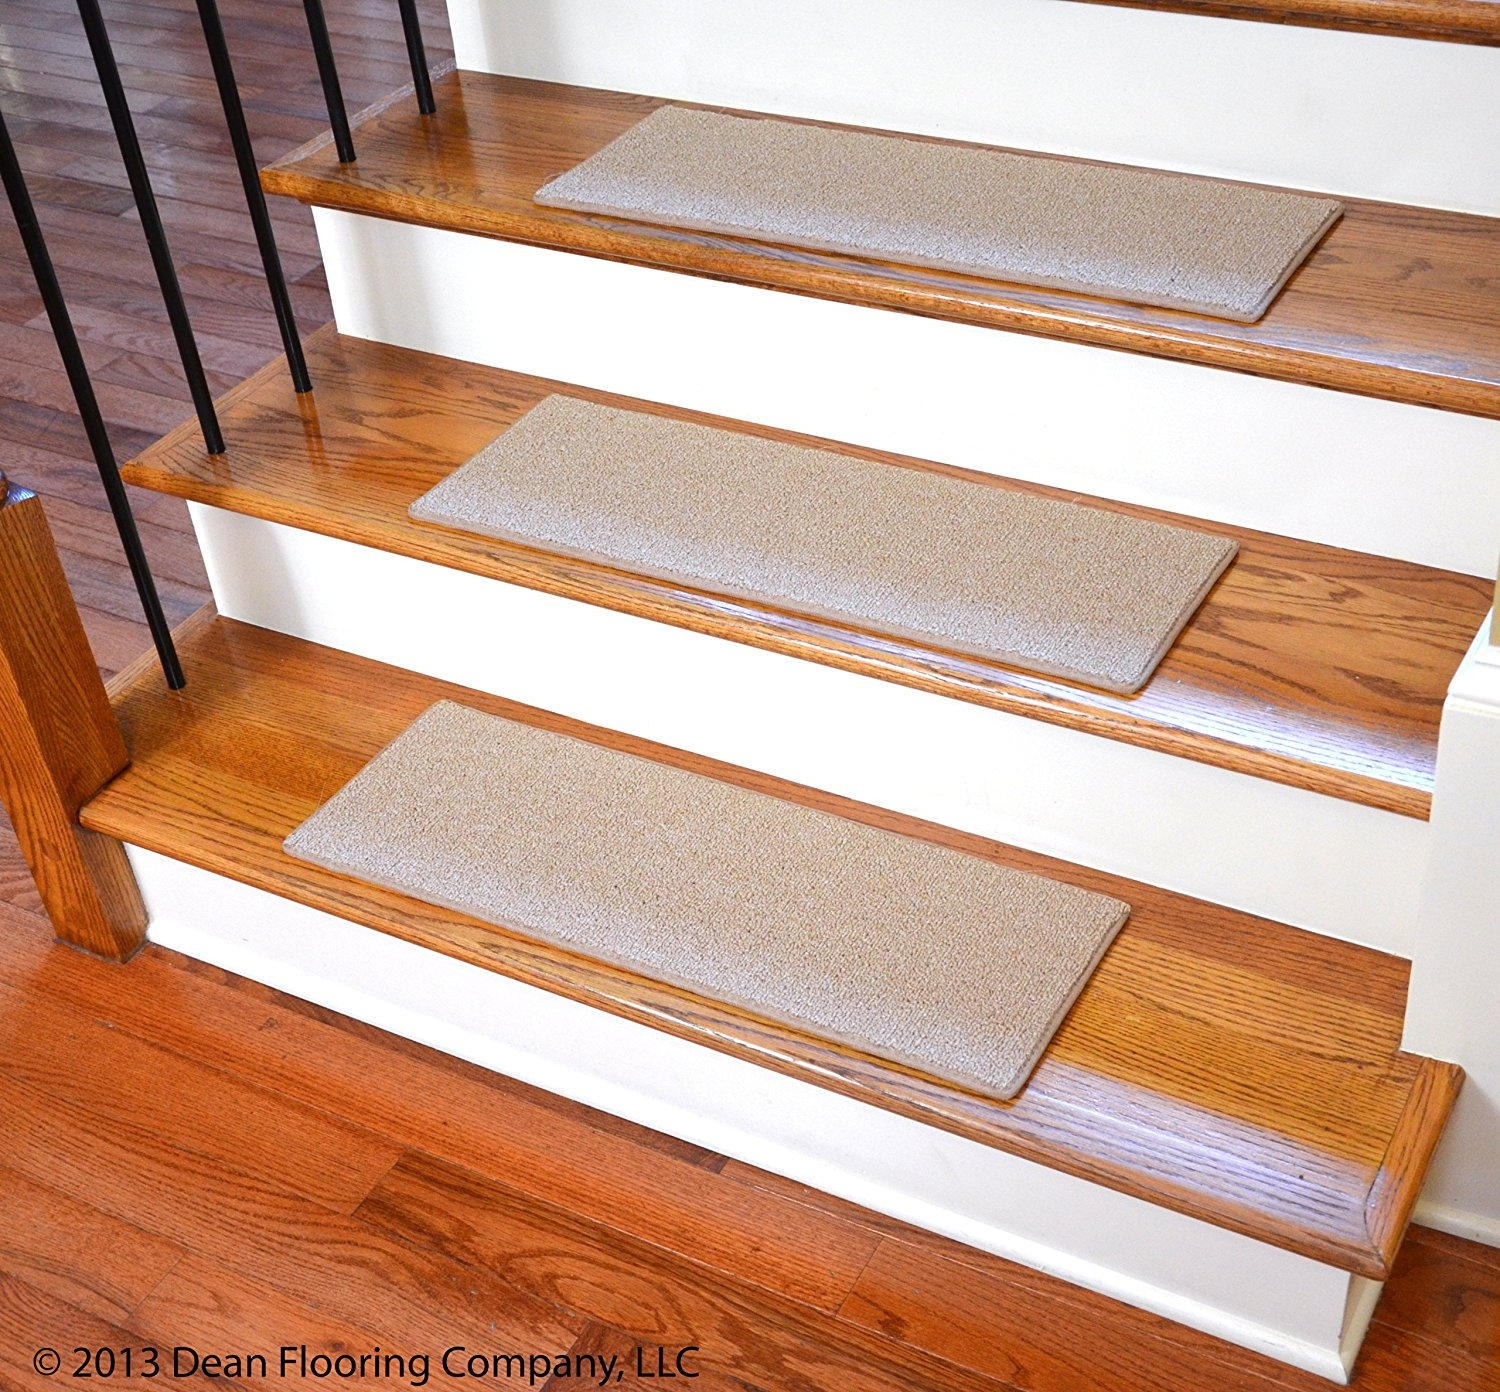 Dean Non Slip Tape Free Pet Friendly Diy Carpet Stair Treadsrugs Inside Stair Treads And Rugs (Image 5 of 15)